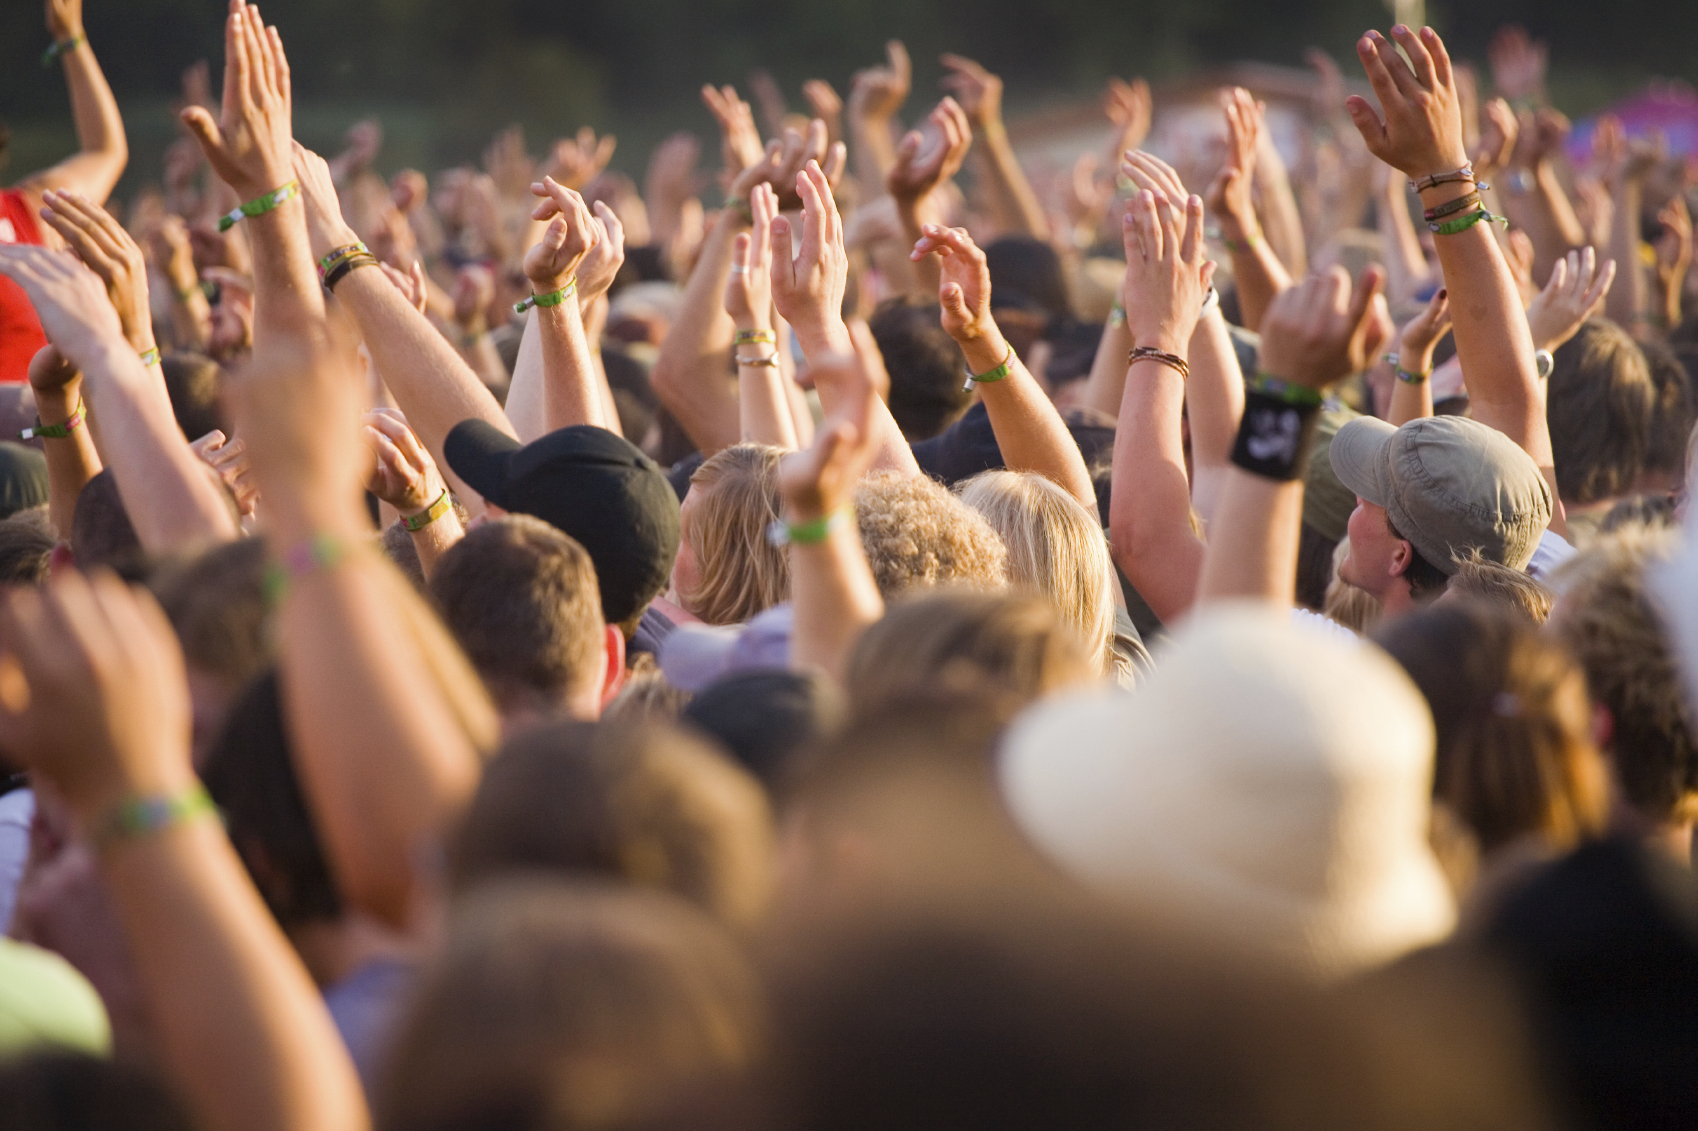 crowd at a festival event with their hands in the air